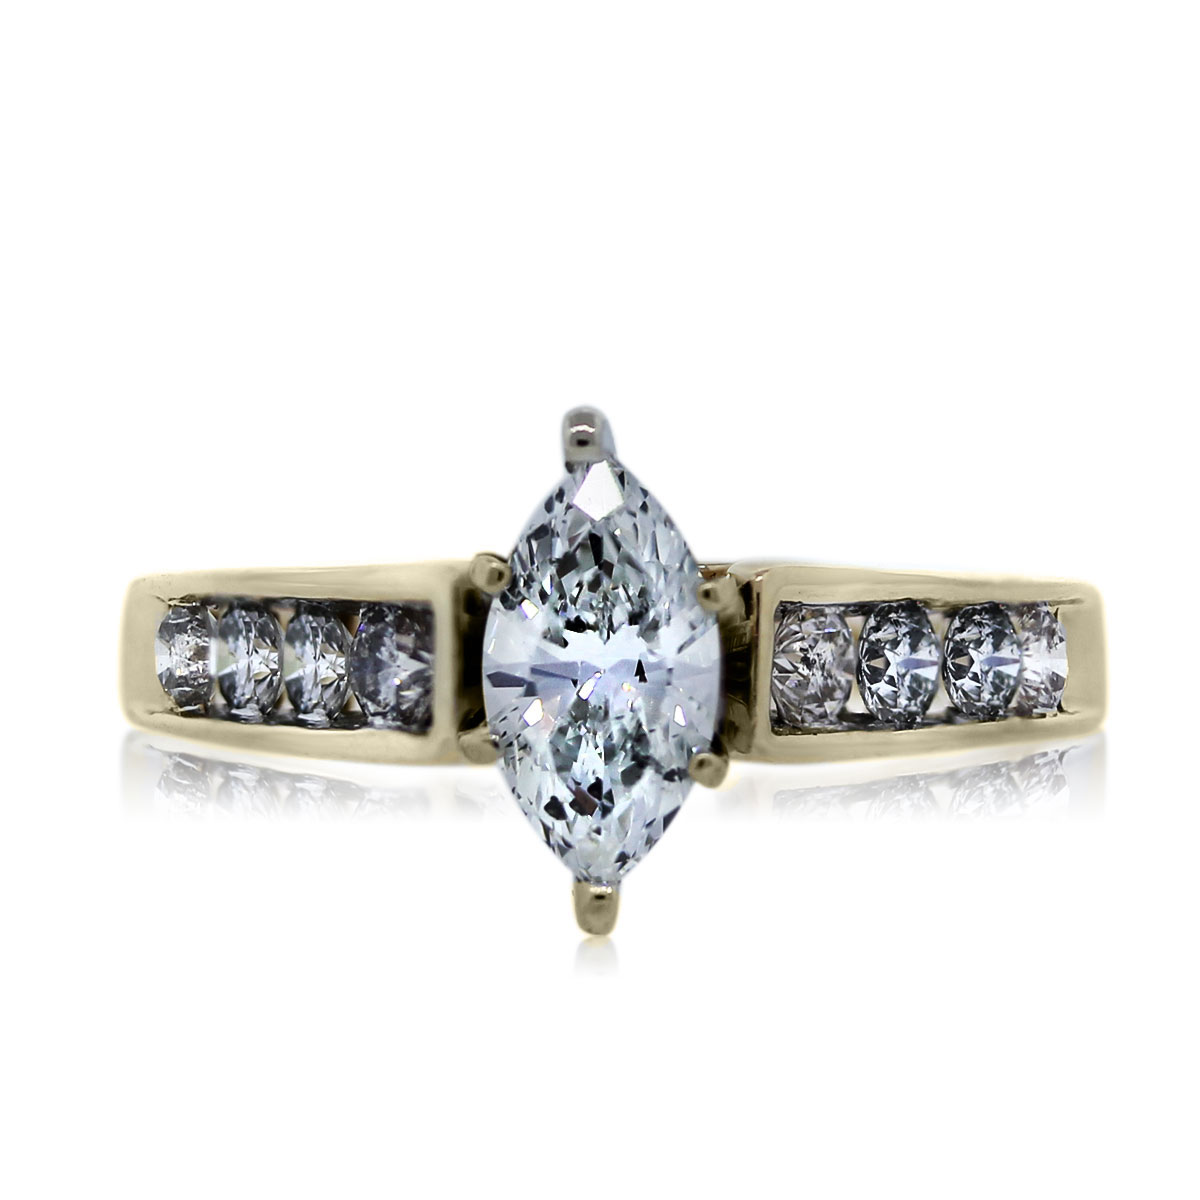 You are Viewing this Gorgeous Marquise Engagement Ring!